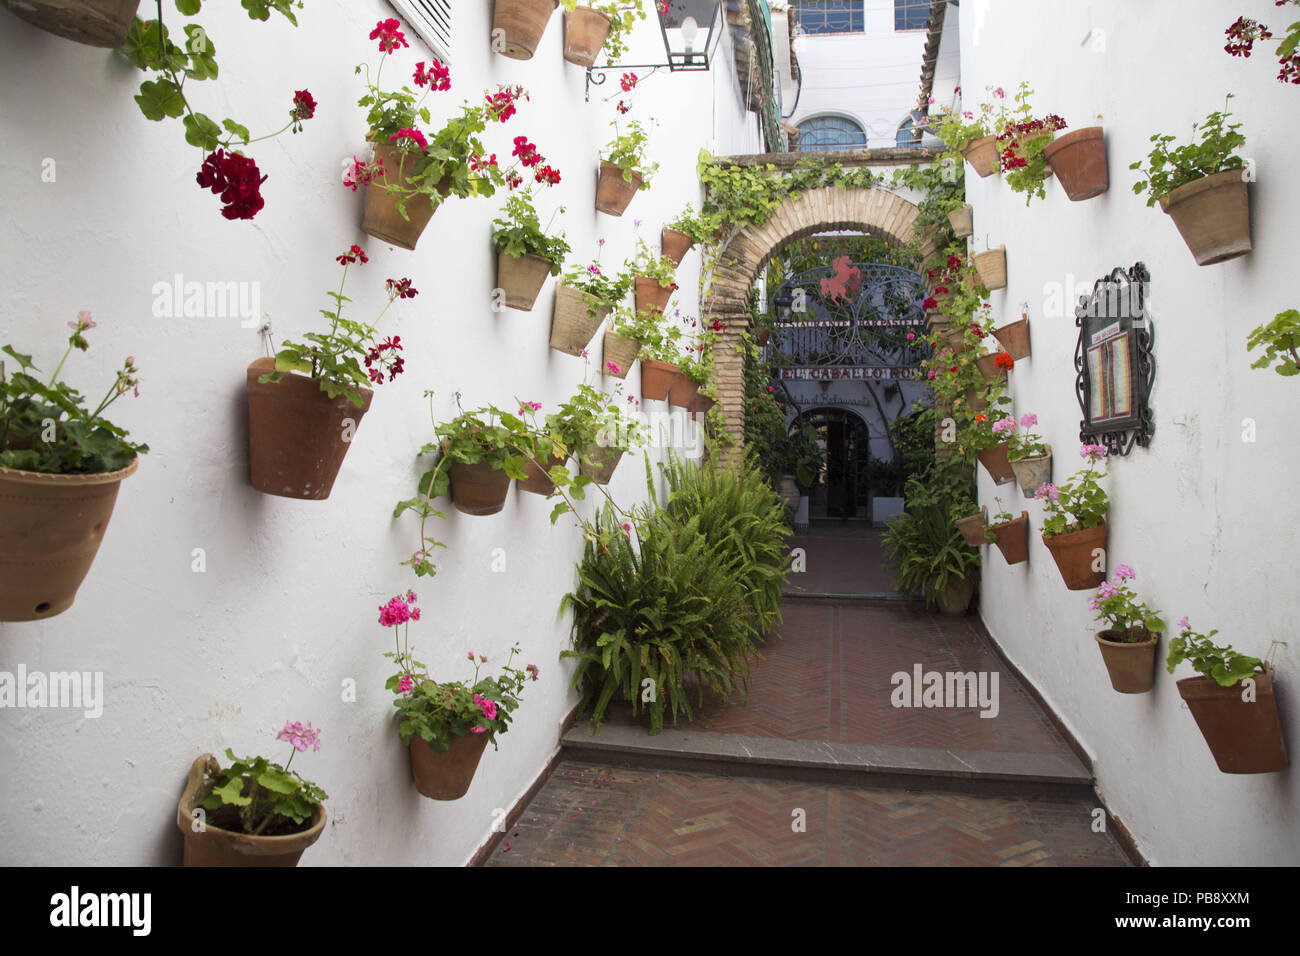 June 10, 2018 - CóRdoba, Spain - Typical Cordovan patio with flowers.Córdoba was the capital of the Later Hispania in the times of the Roman Republic, or of the Bética province during the Roman Empire and the Caliphate of Córdoba during the Muslim era. Credit: Lito Lizana/SOPA Images/ZUMA Wire/Alamy Live News Stock Photo